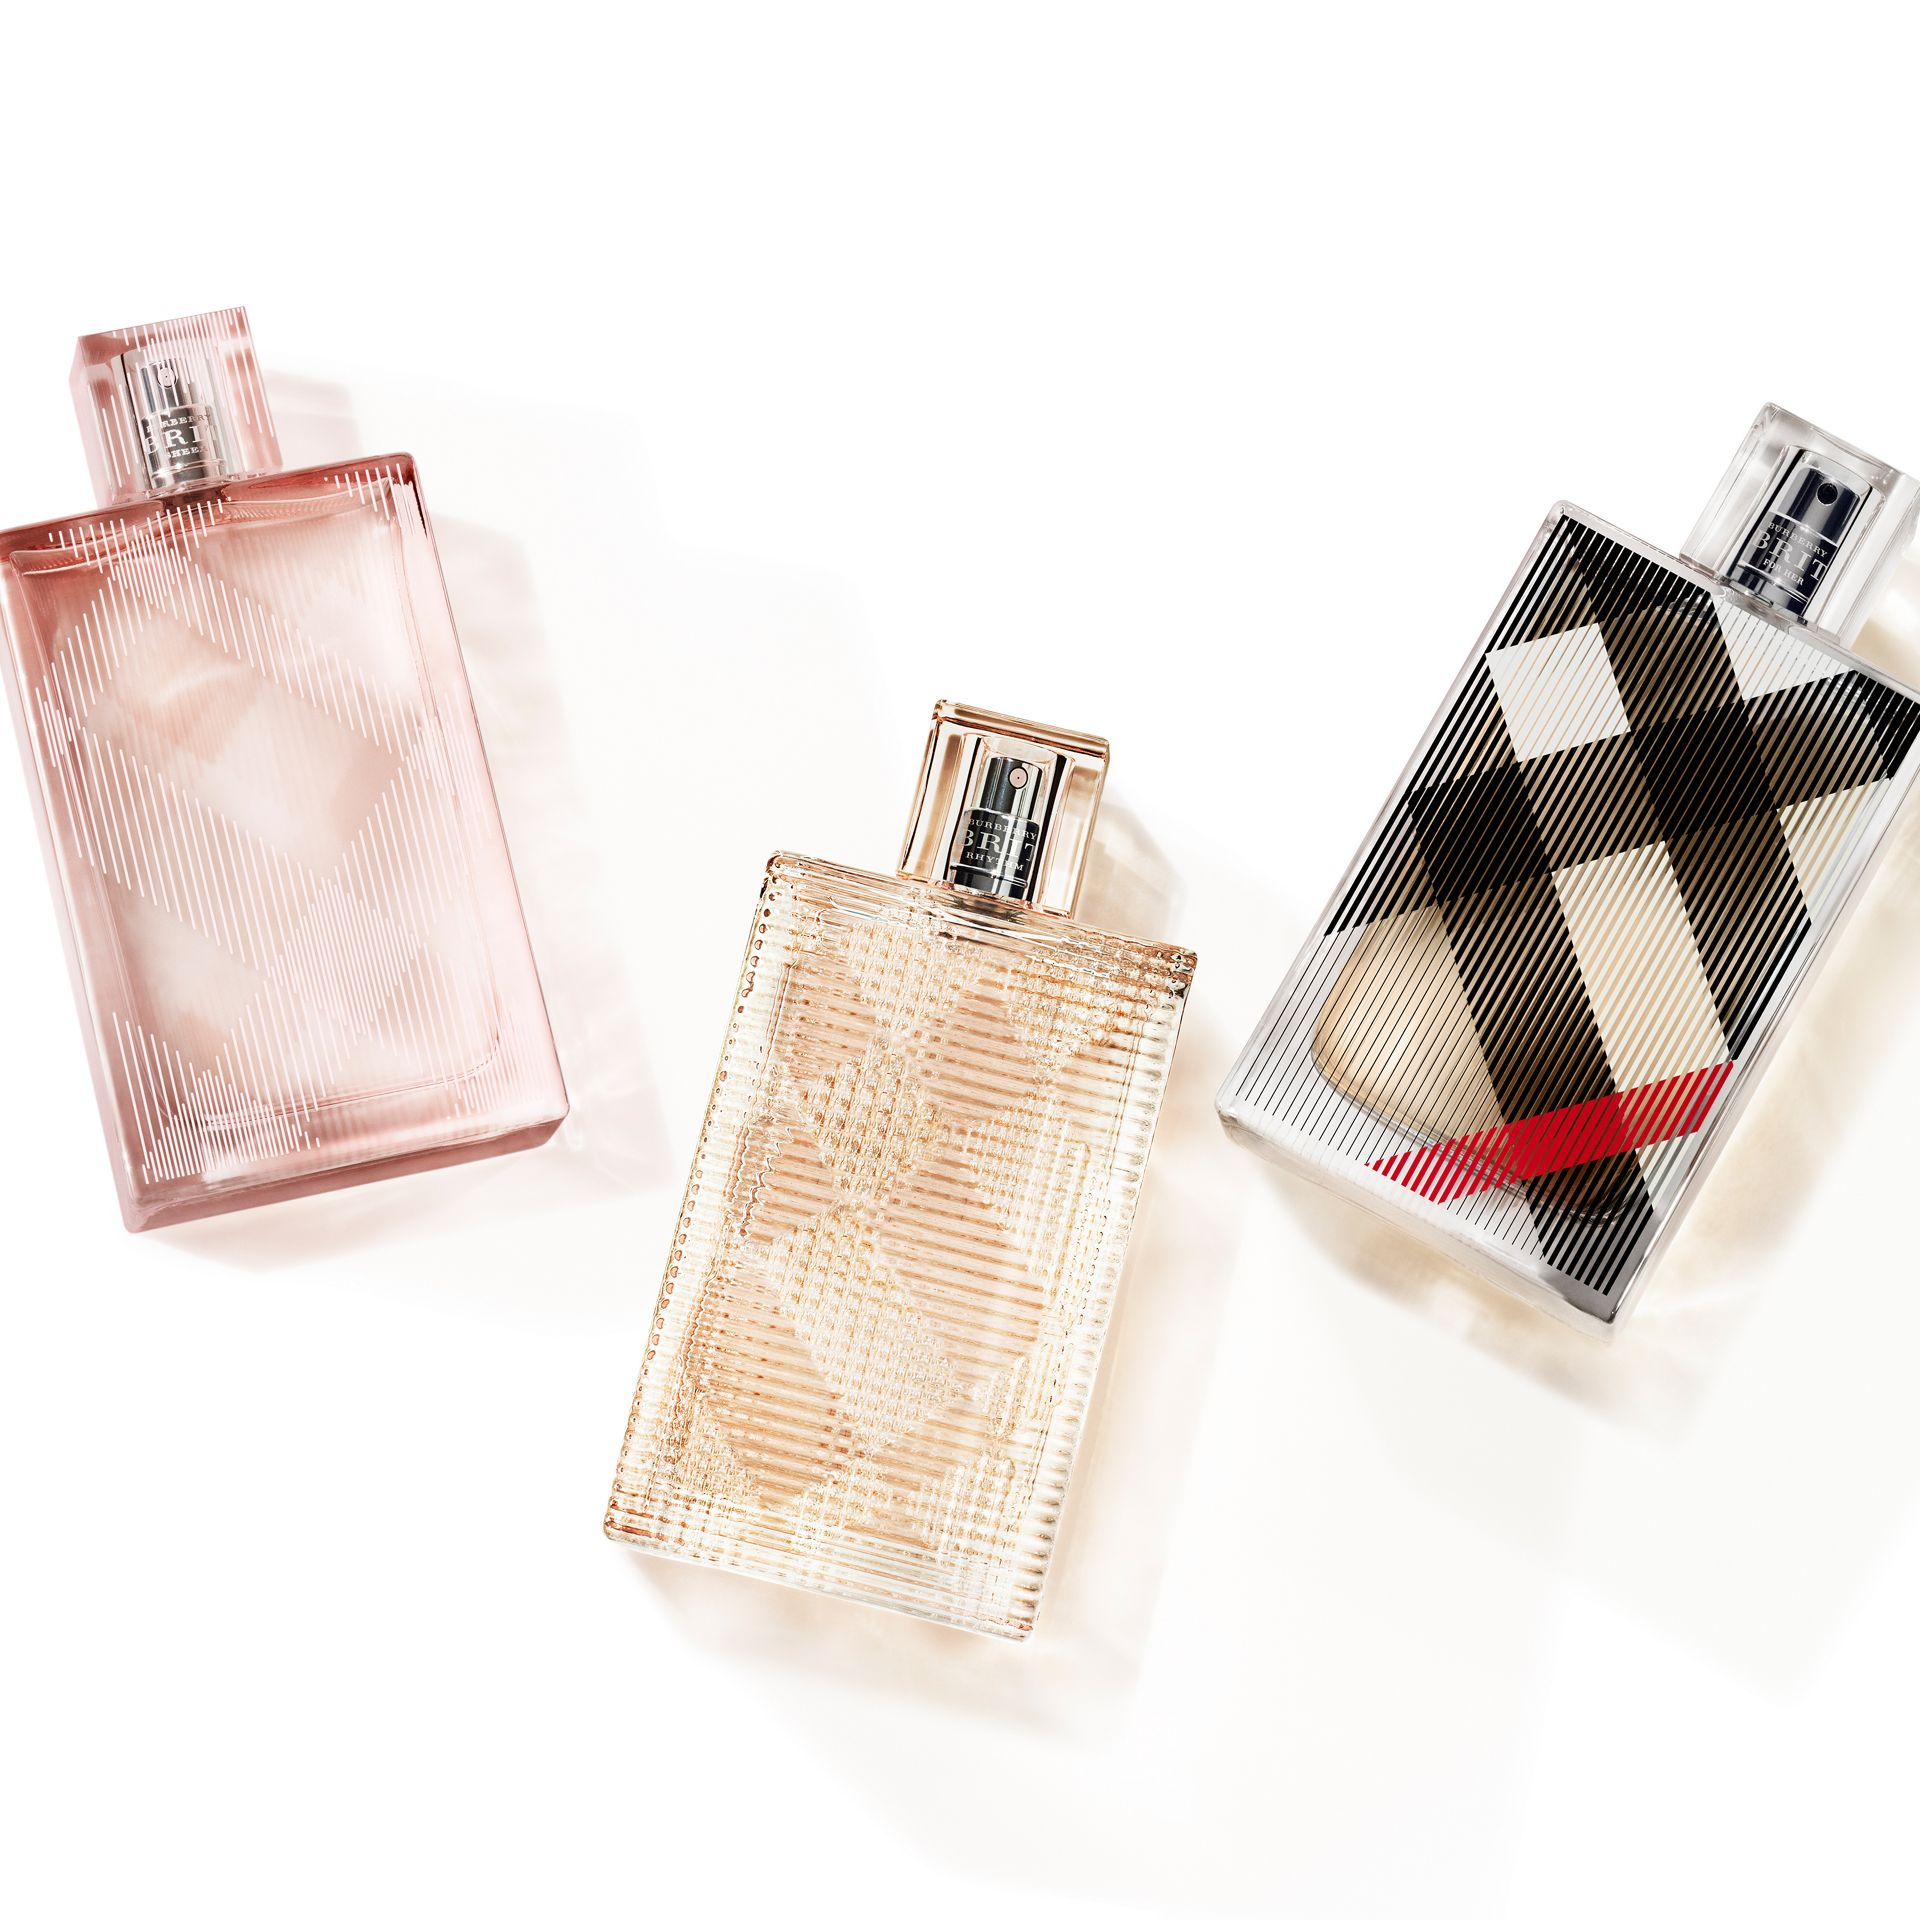 Burberry Brit For Her Eau de Parfum 30ml - Women | Burberry - gallery image 3